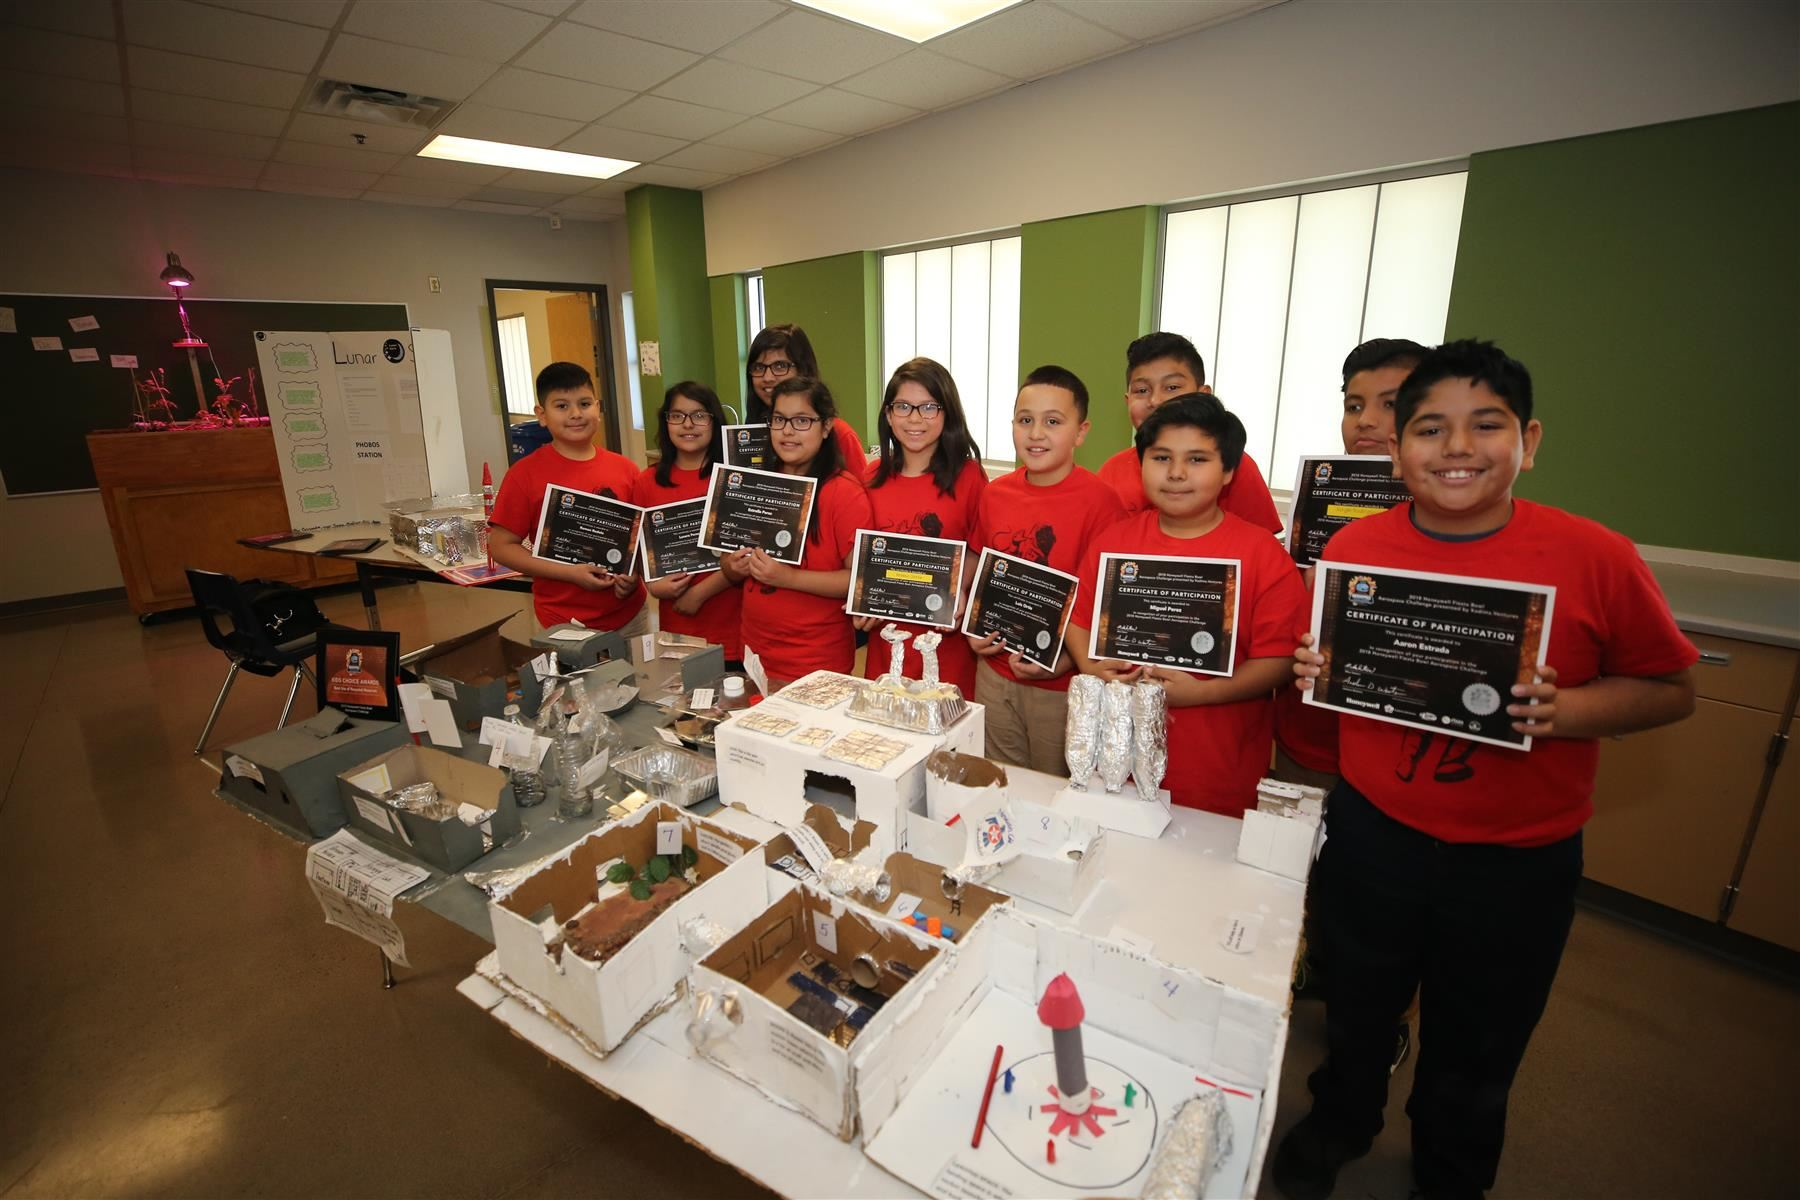 T-Birds Take Home Accolades at Aerospace Challenge